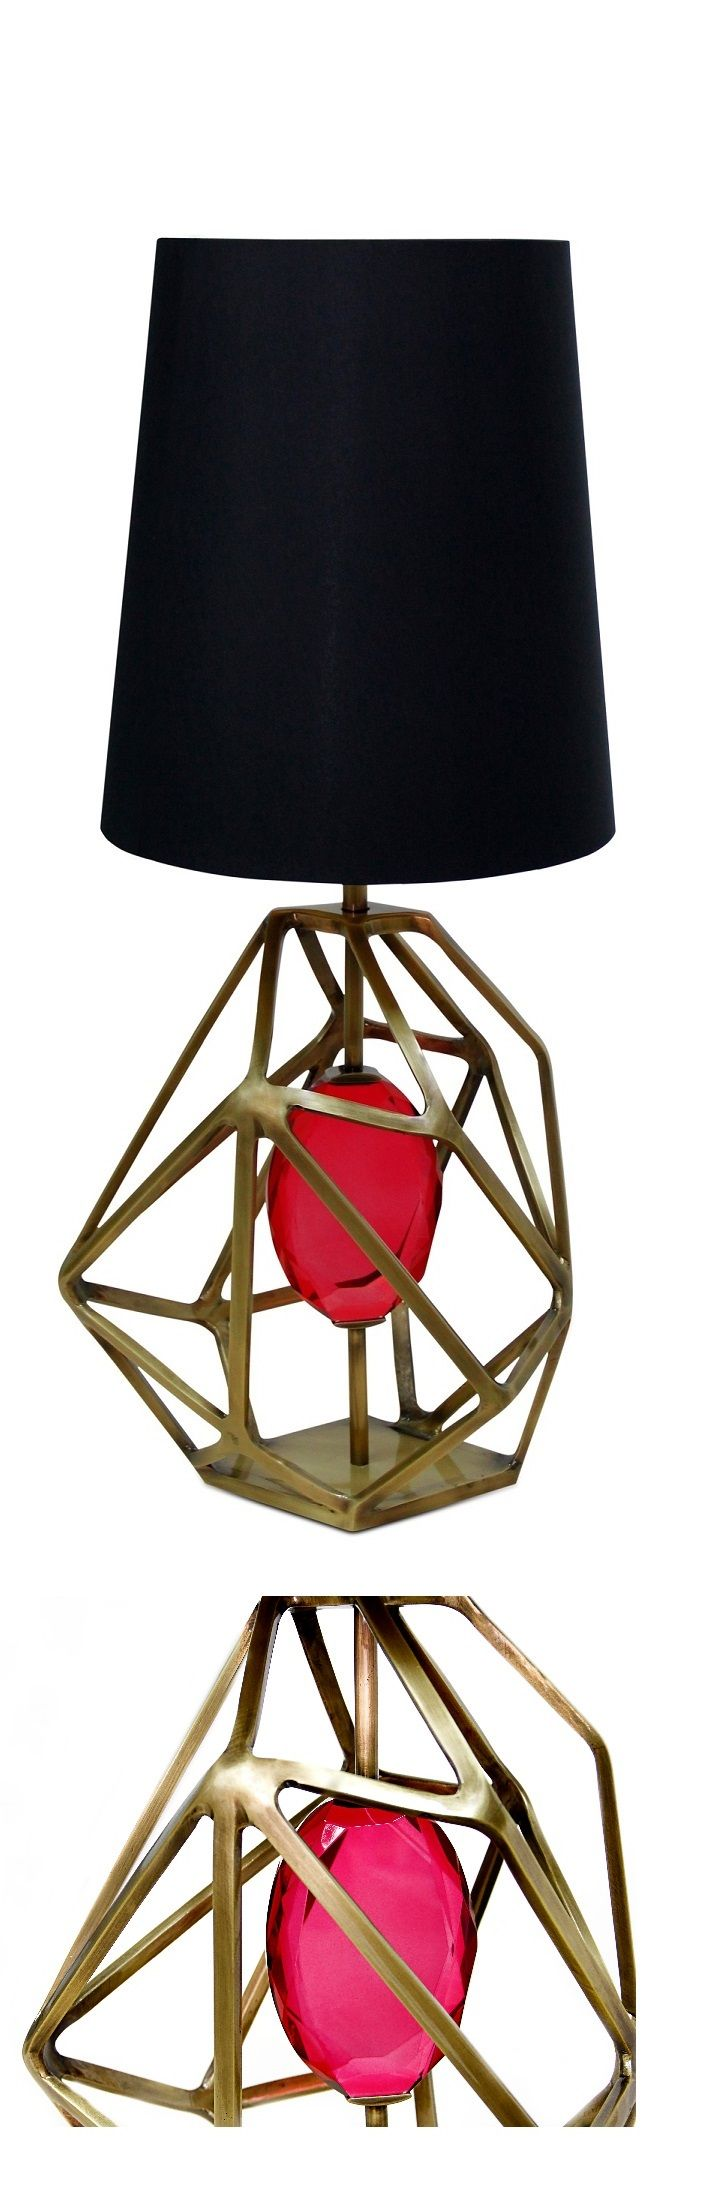 Luxury Table Lamps, Designer Table Lamps, High End Table Lamps, Custom Madeu2026